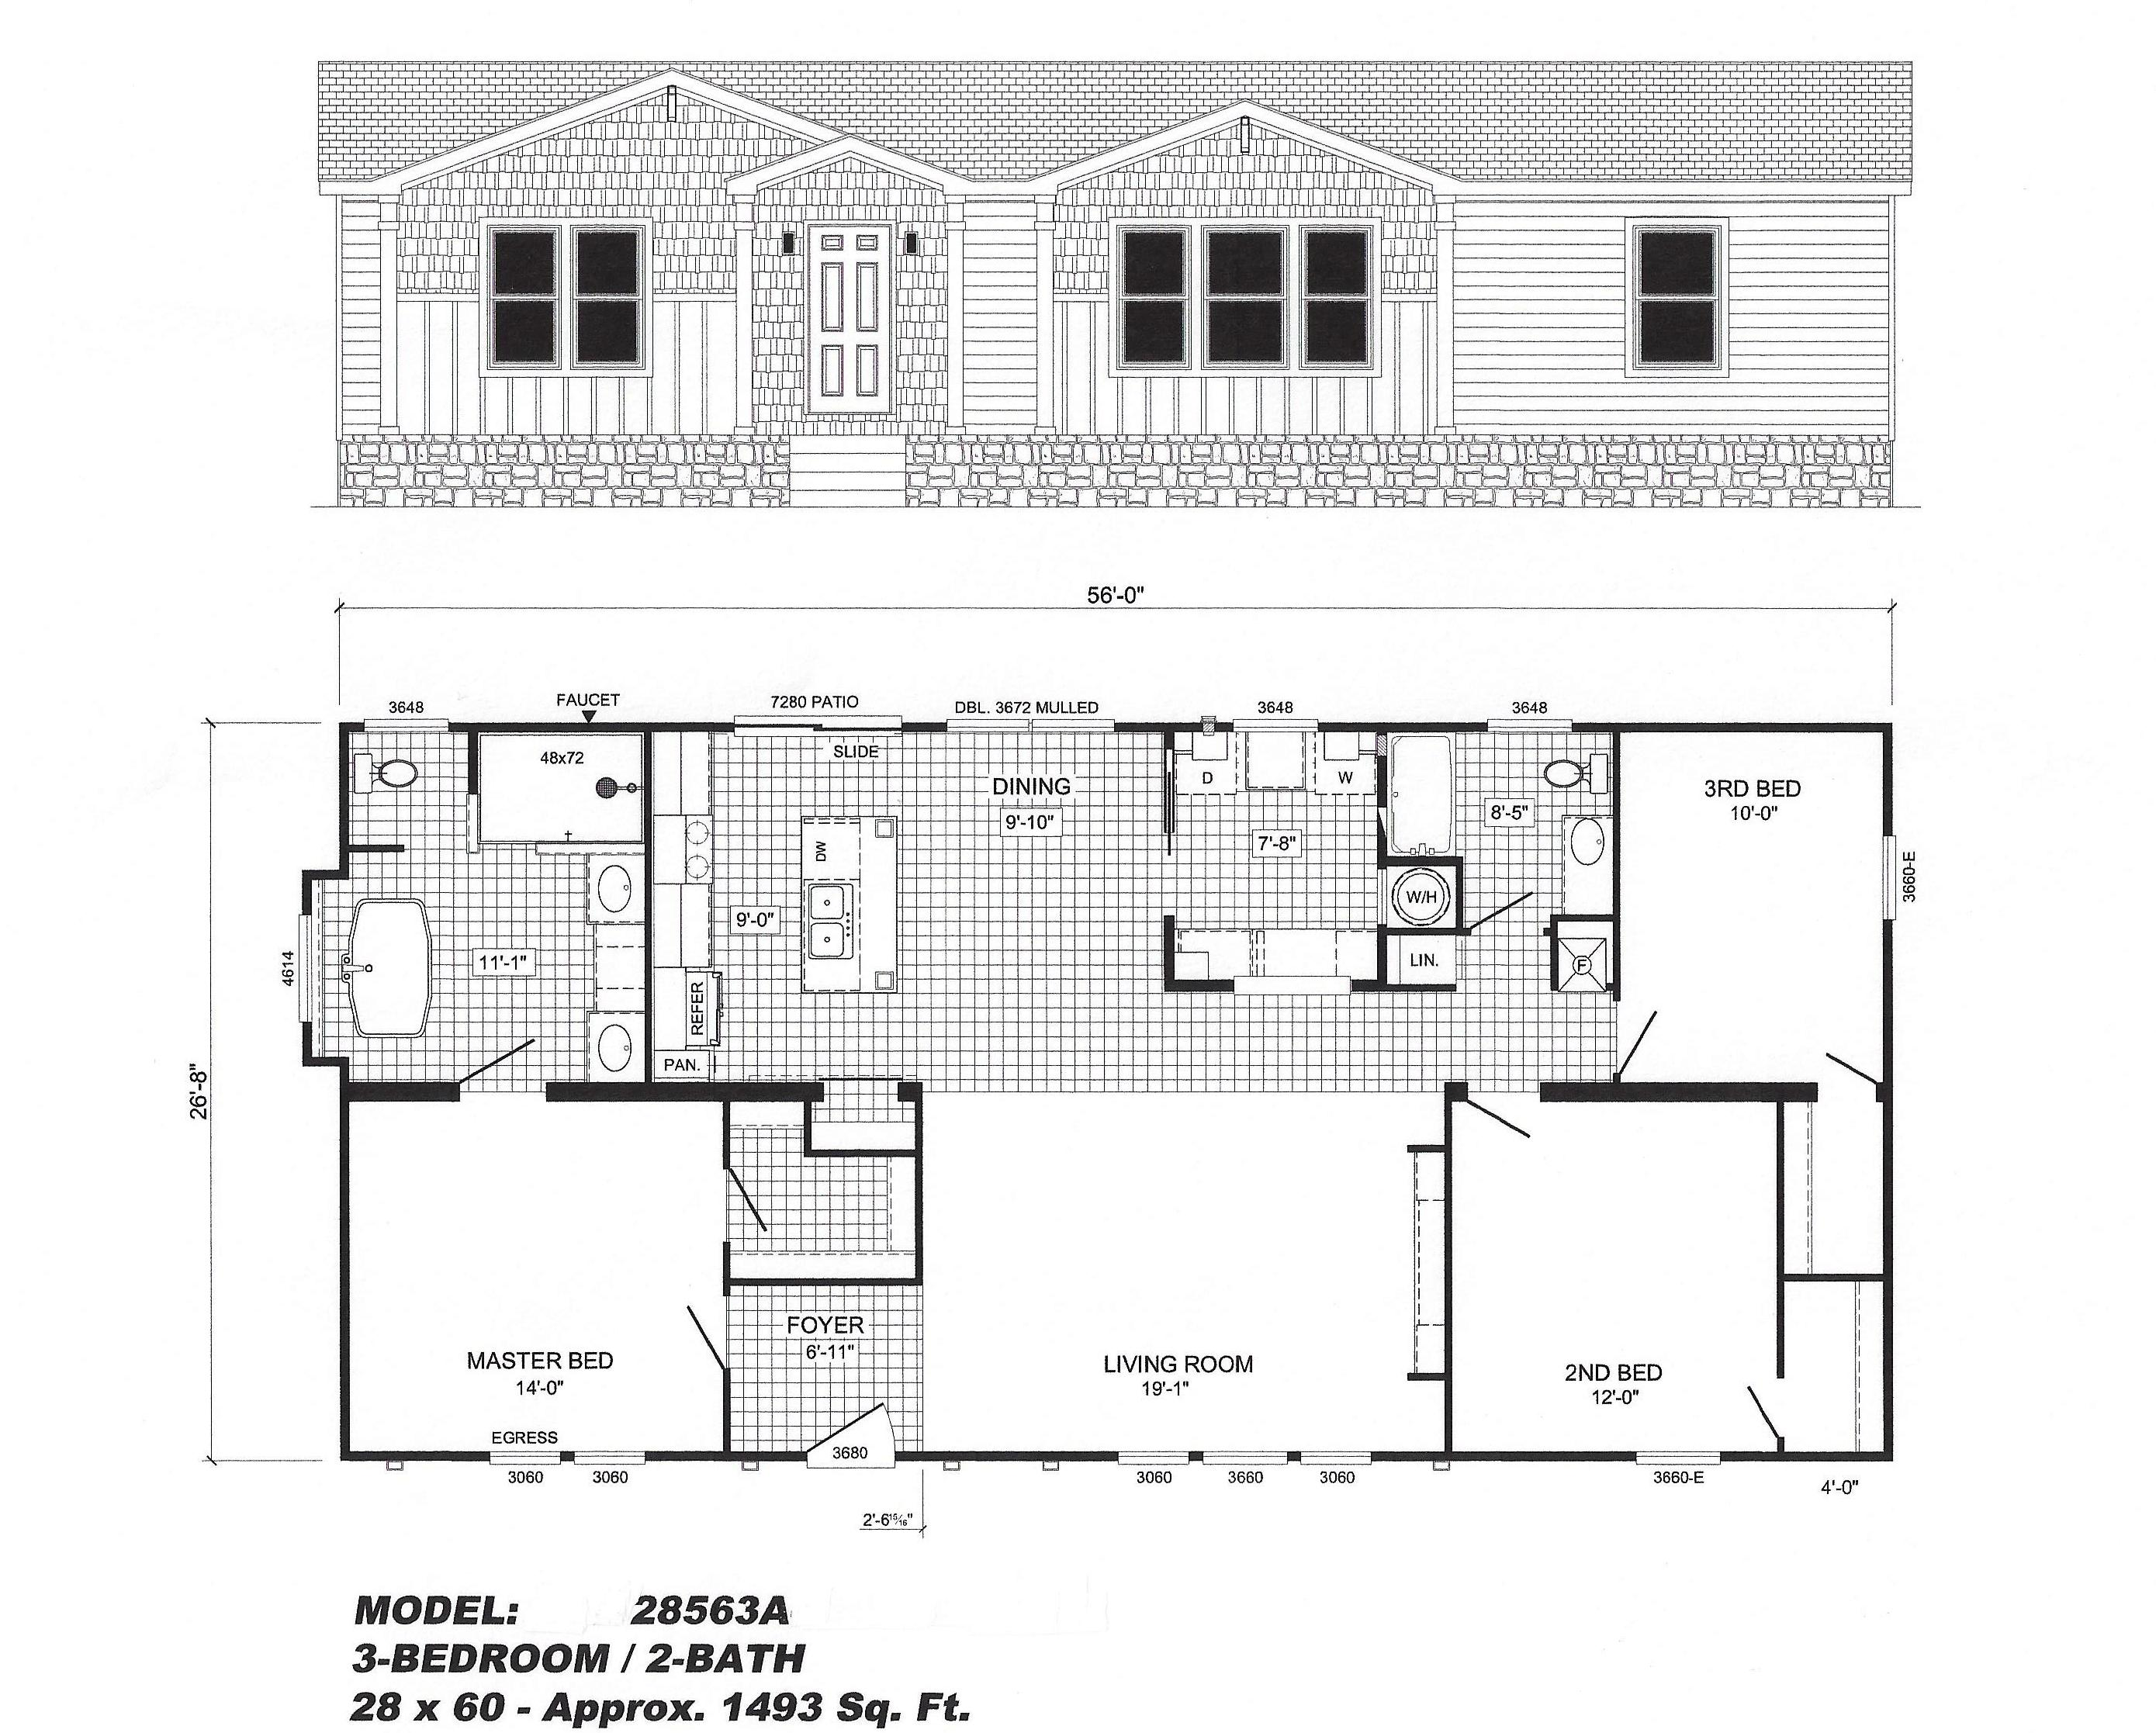 Patriot mobile home floor plans for Mobile home designs floor plans